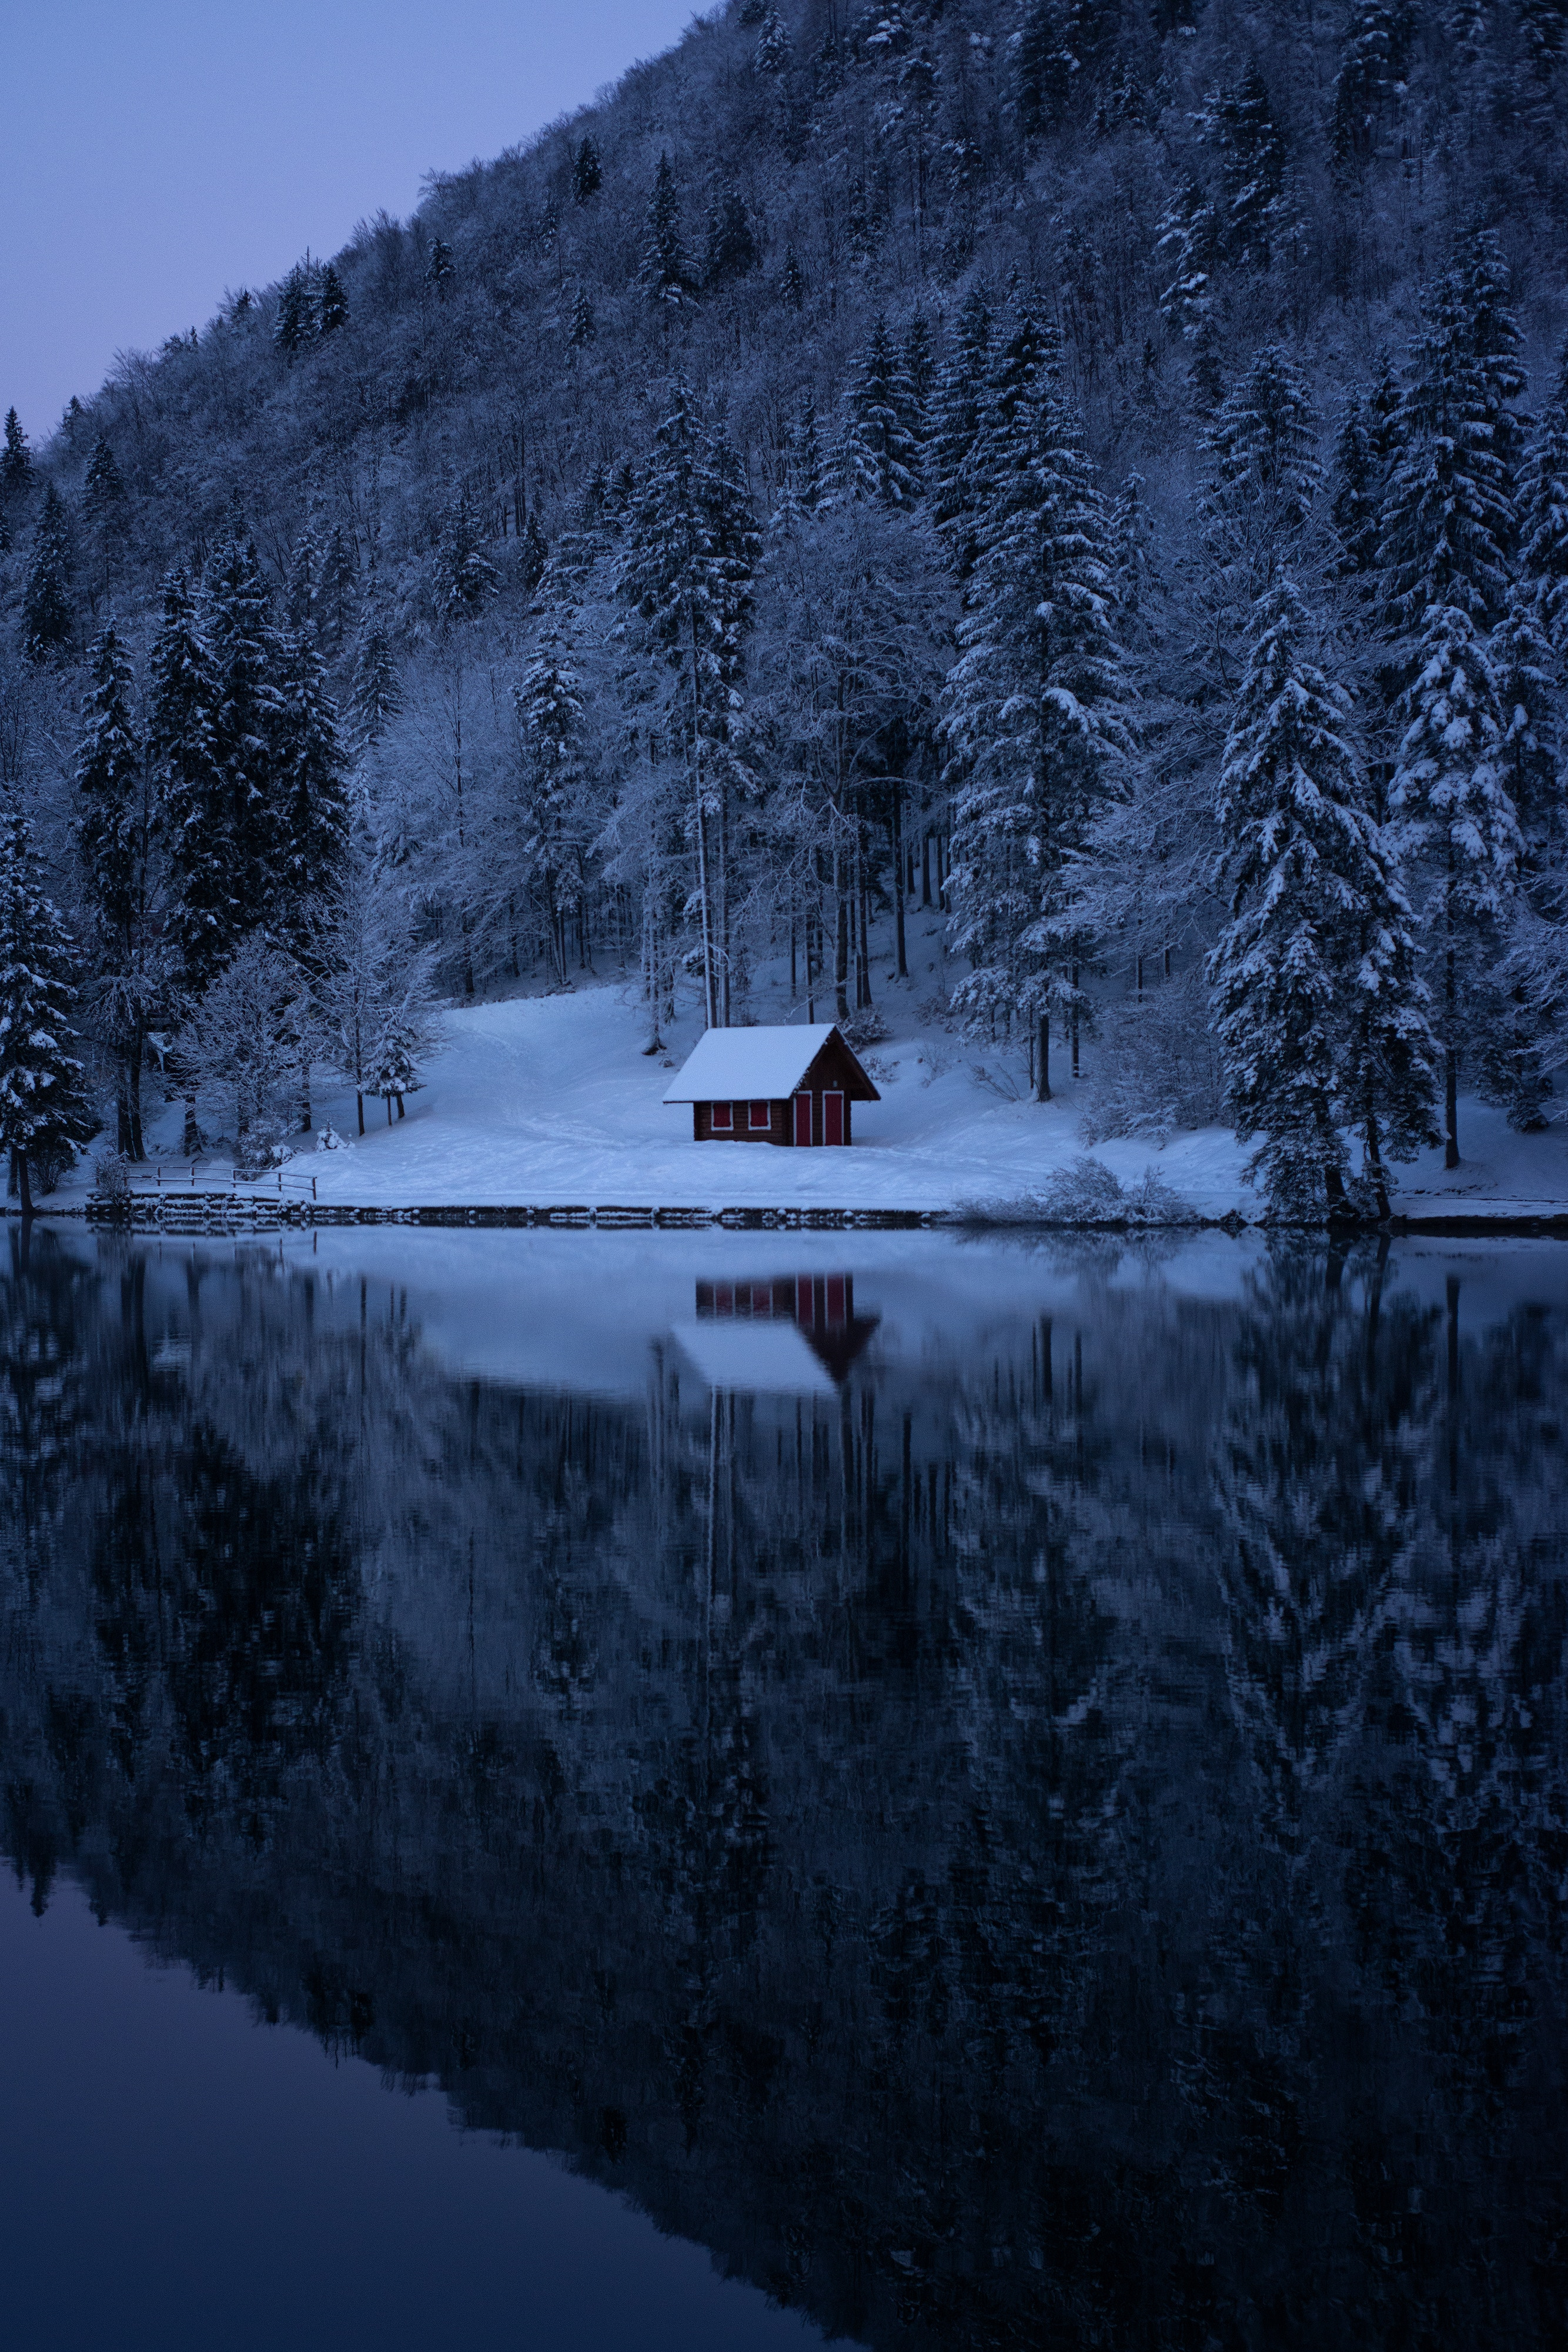 155936 download wallpaper Winter, Trees, Nature, Snow, Lake, Forest screensavers and pictures for free